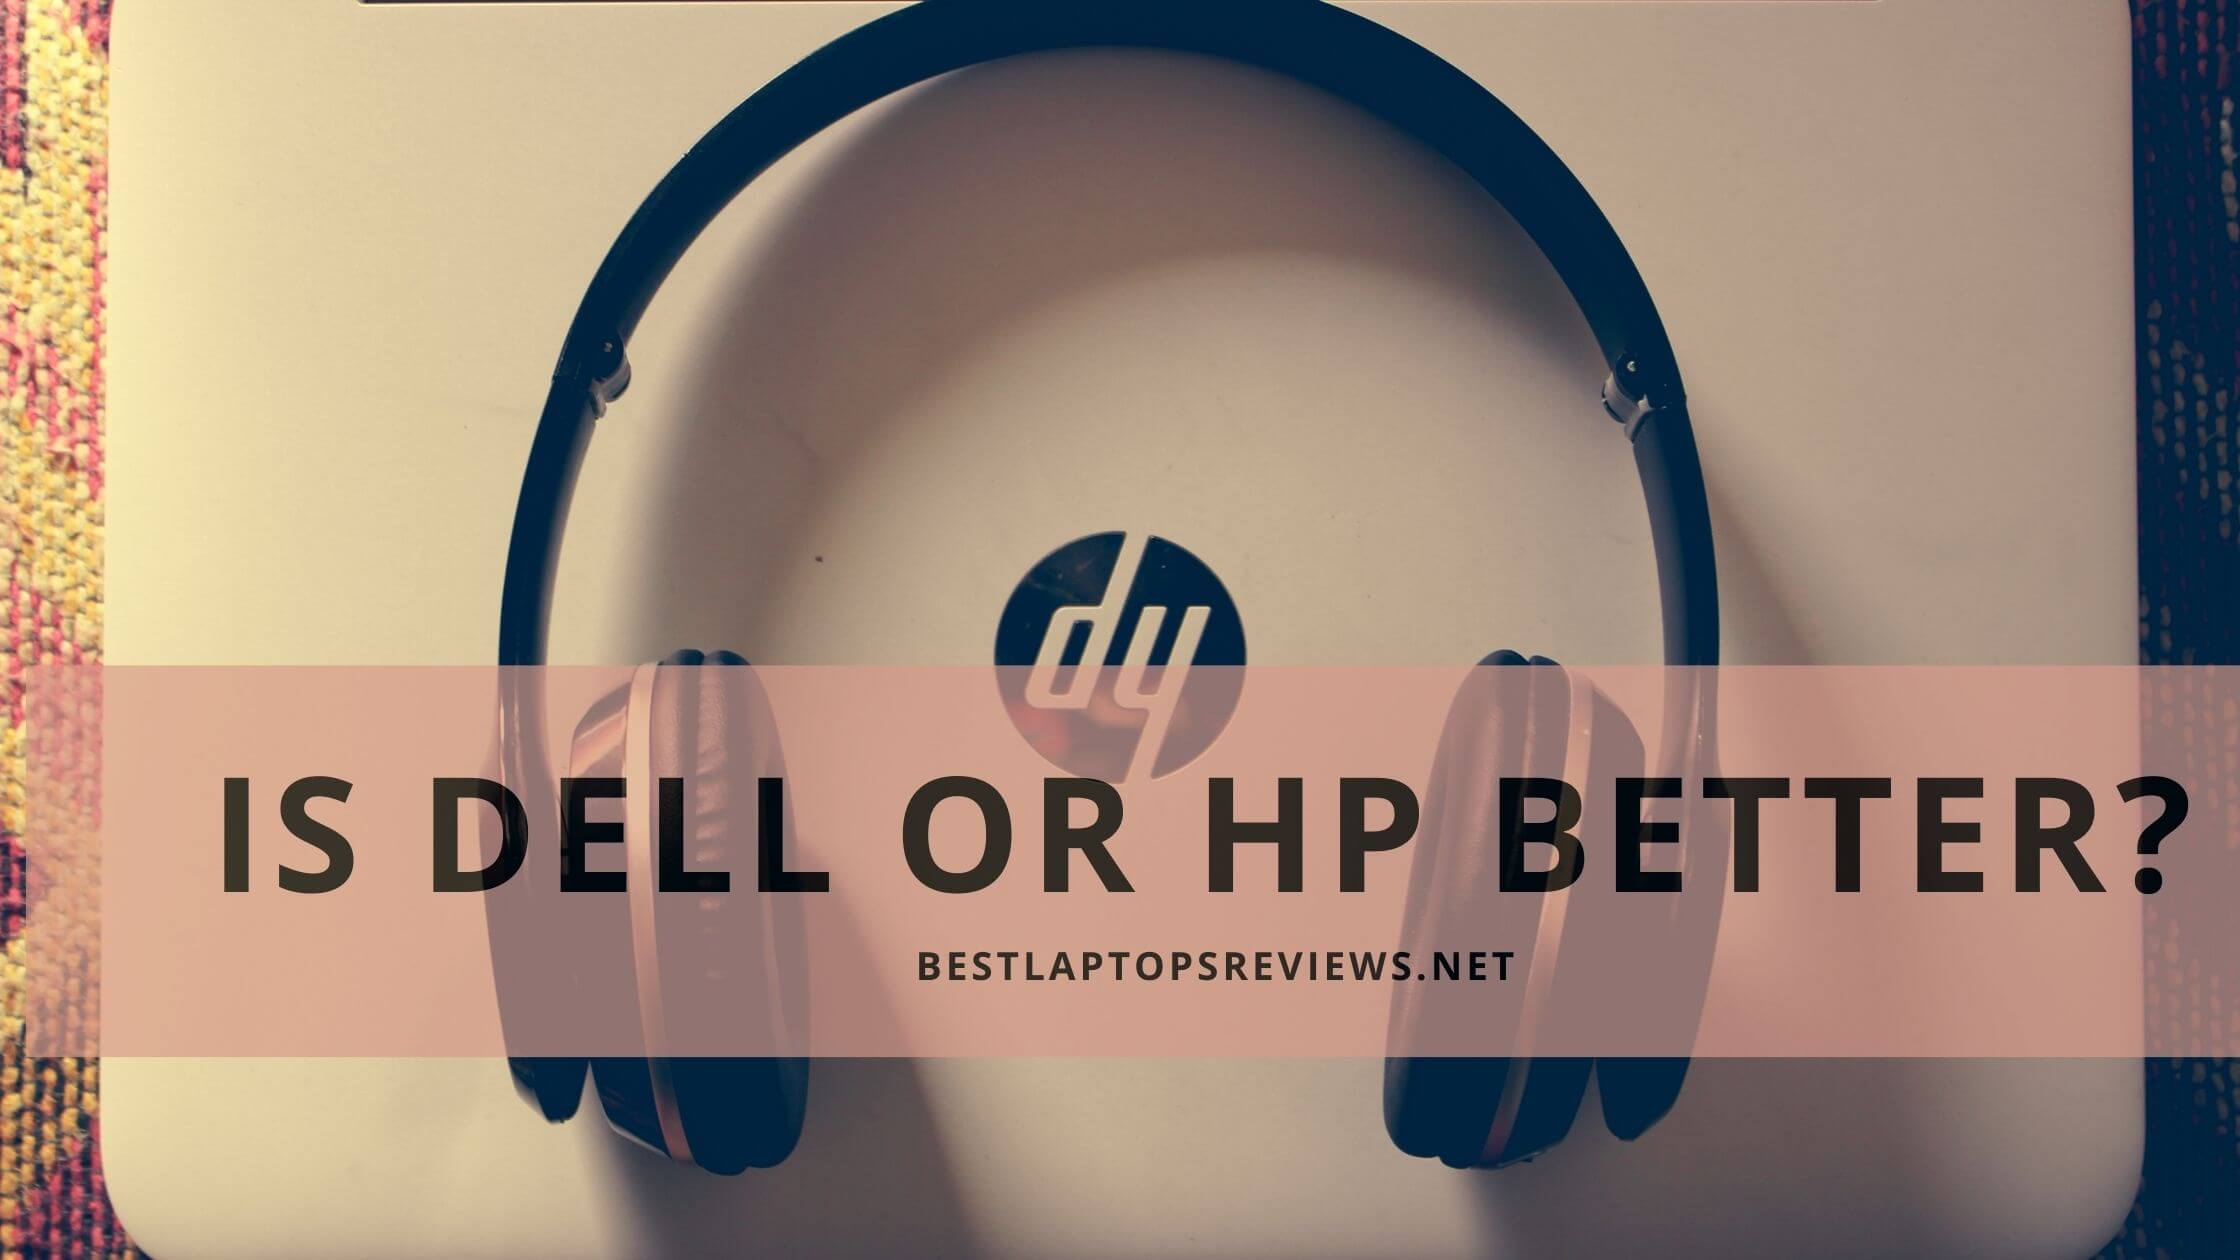 Is Dell or HP better